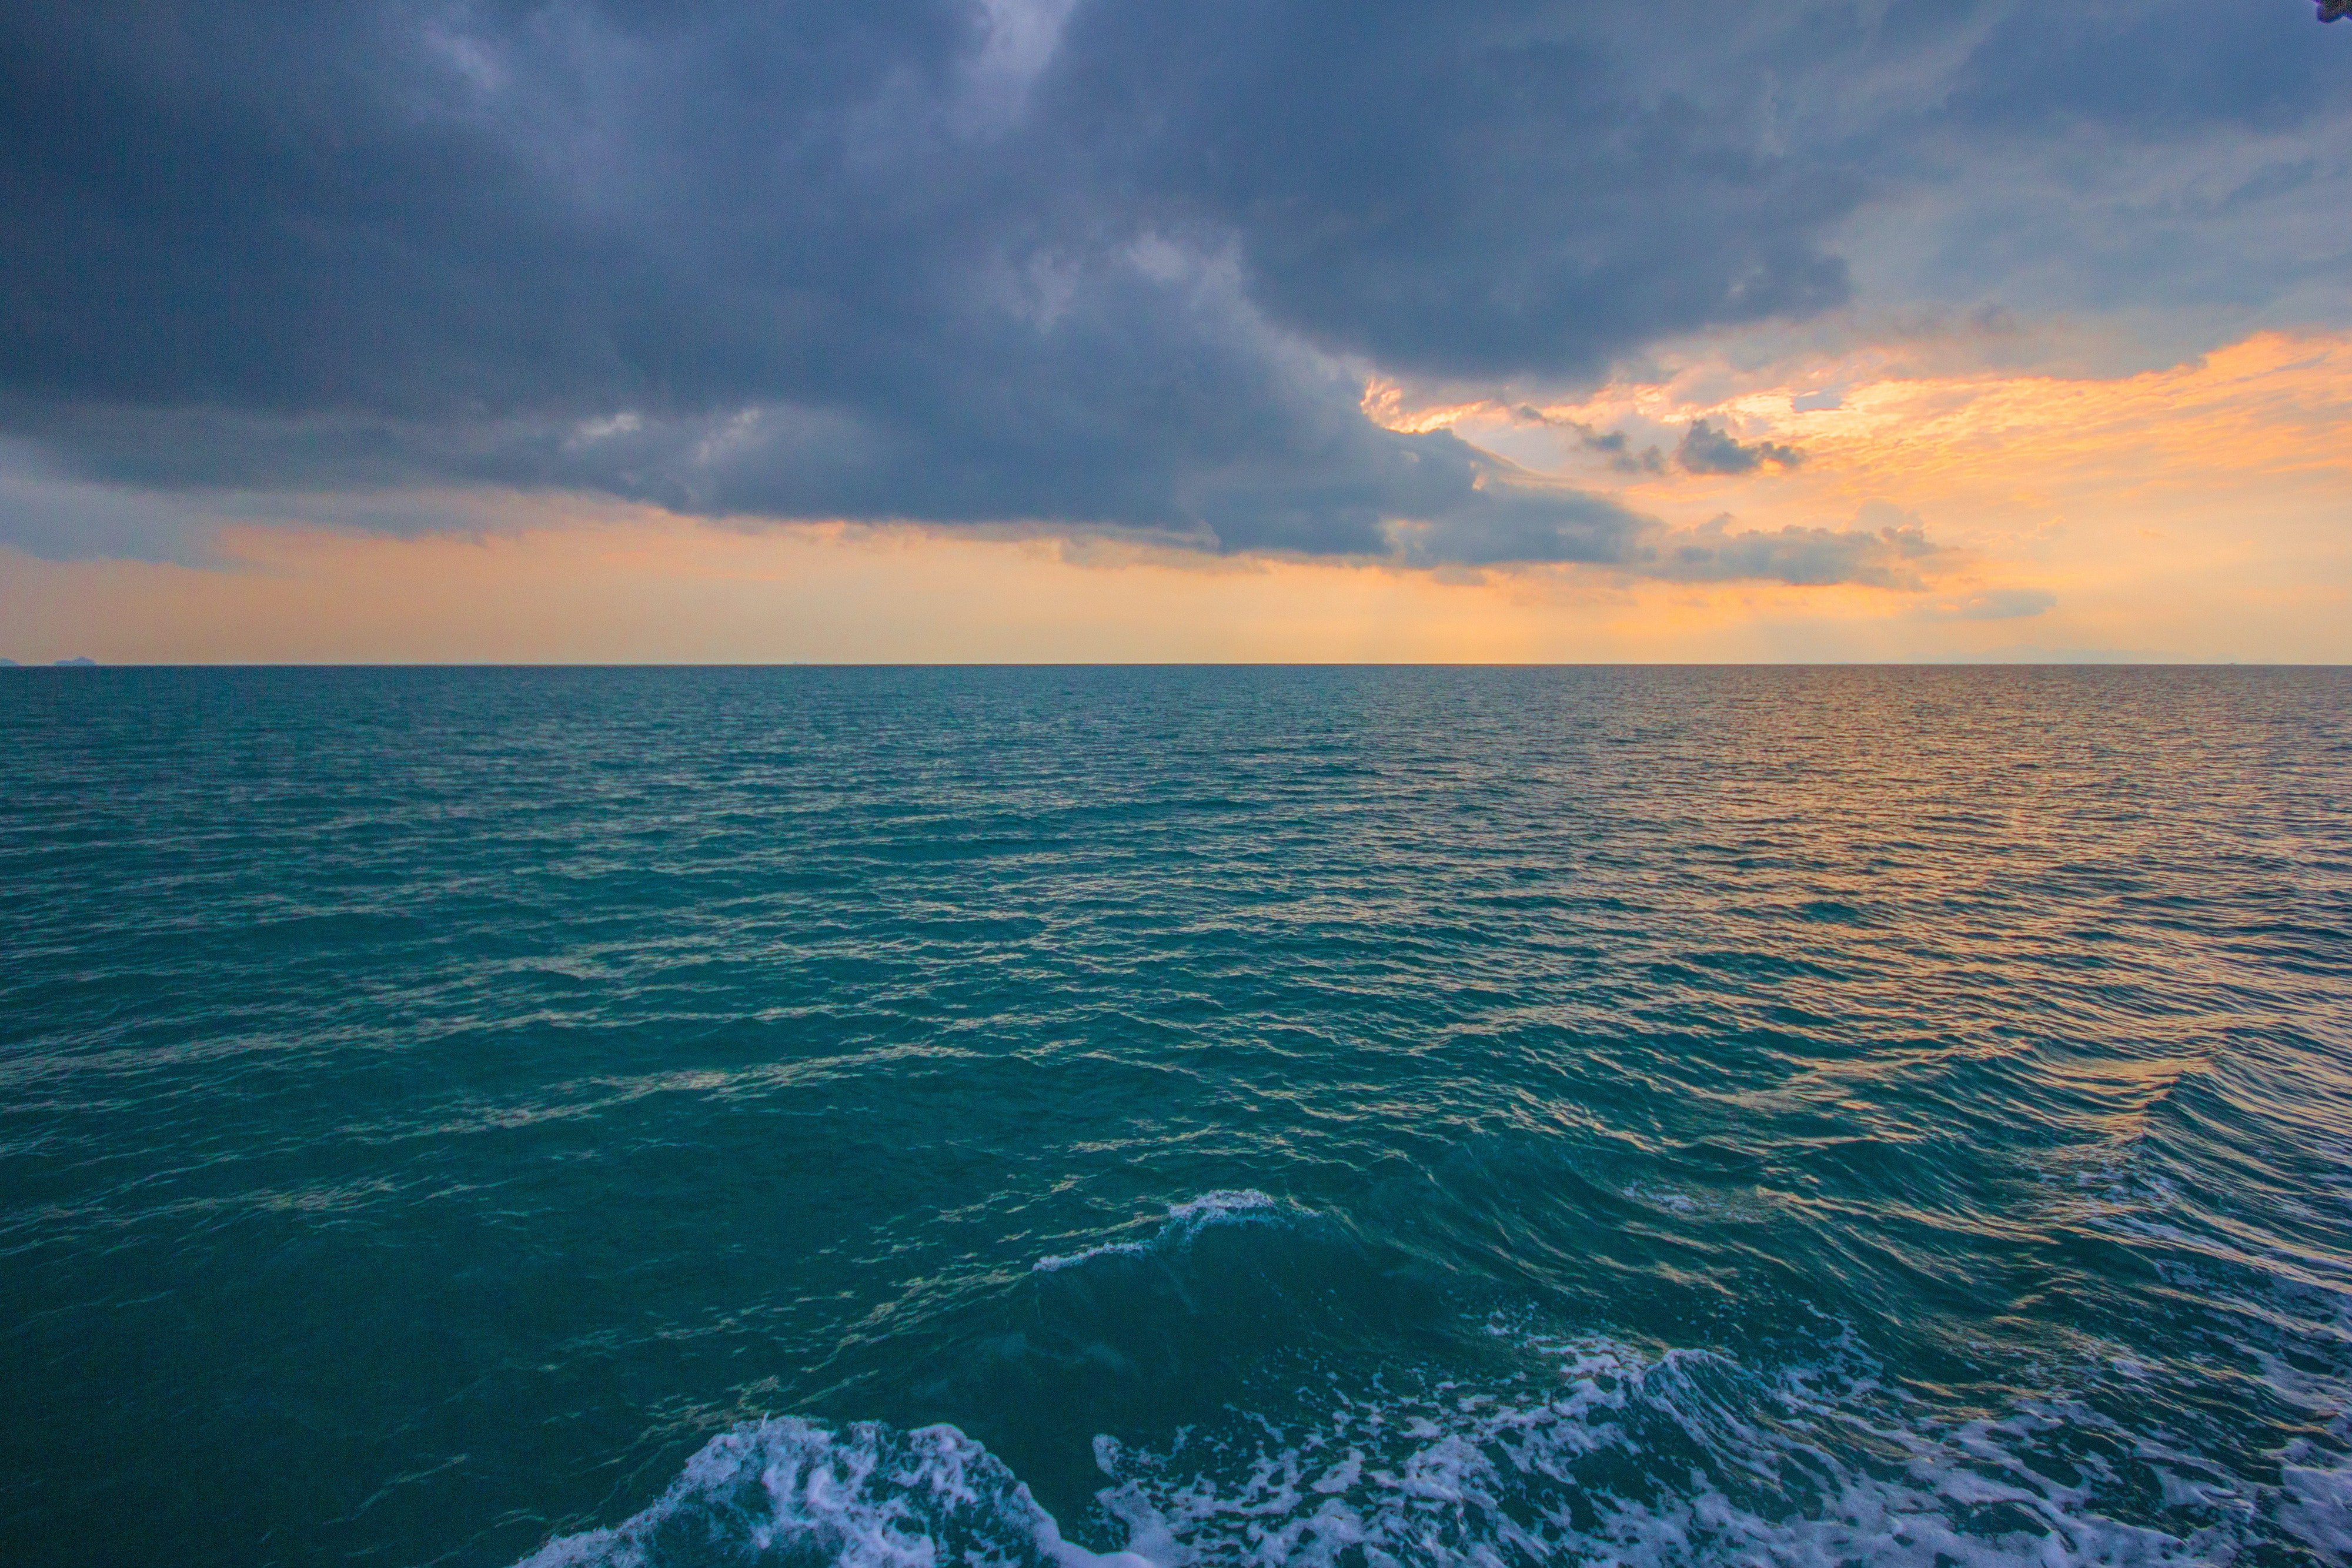 Blue Body of Water Under White Clouds · Free Stock Photo